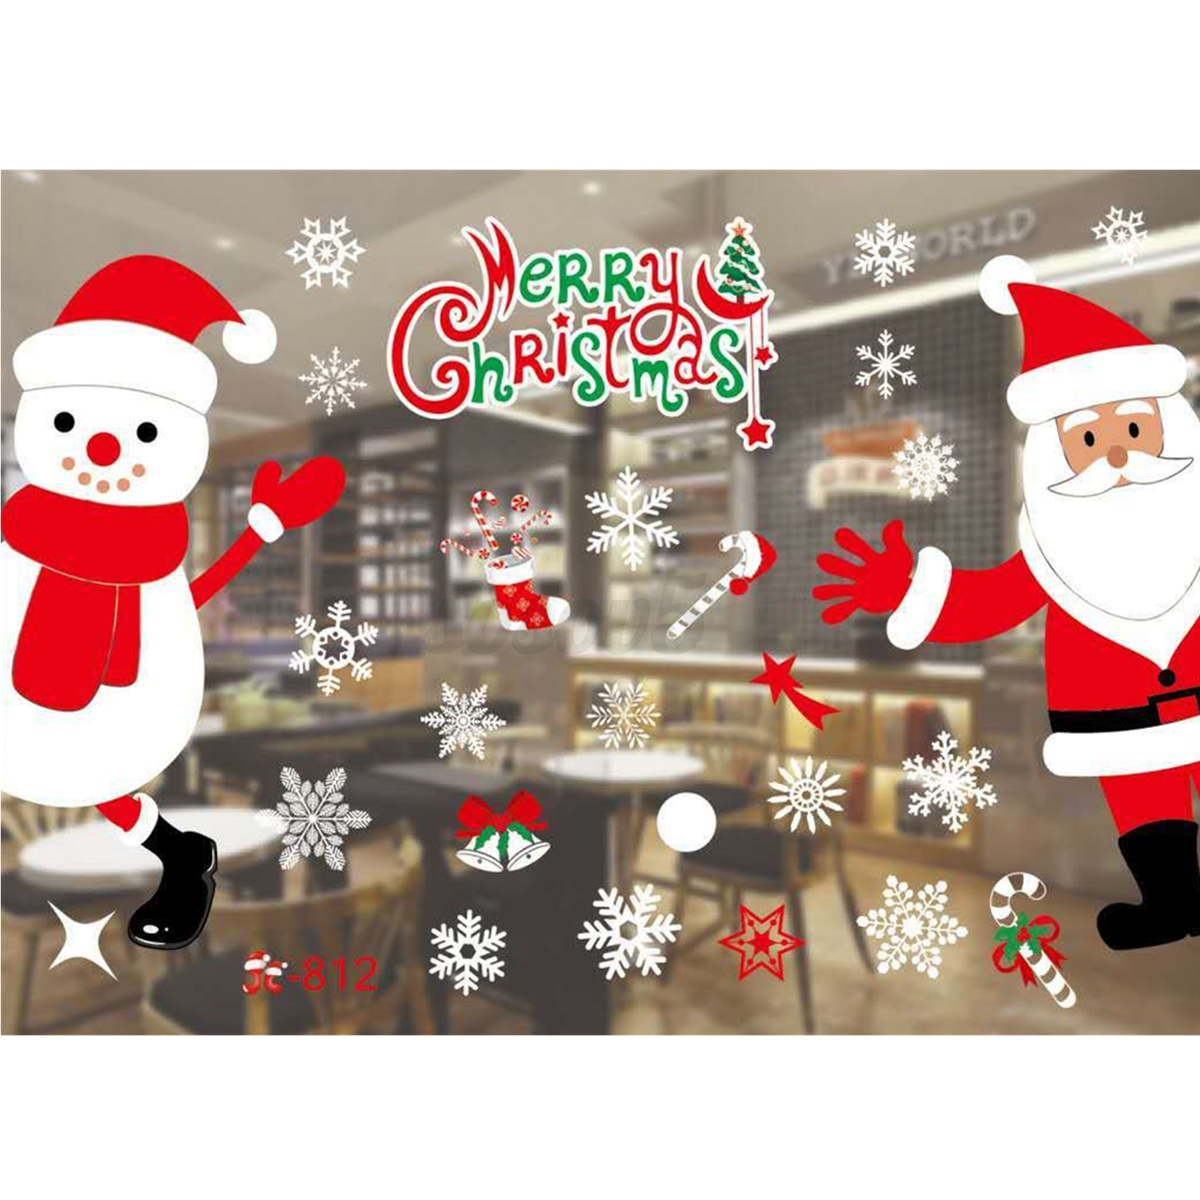 Removable Christmas Wall Stickers Home Window Glass Wall Sticker Decals Hotel Holiday Party